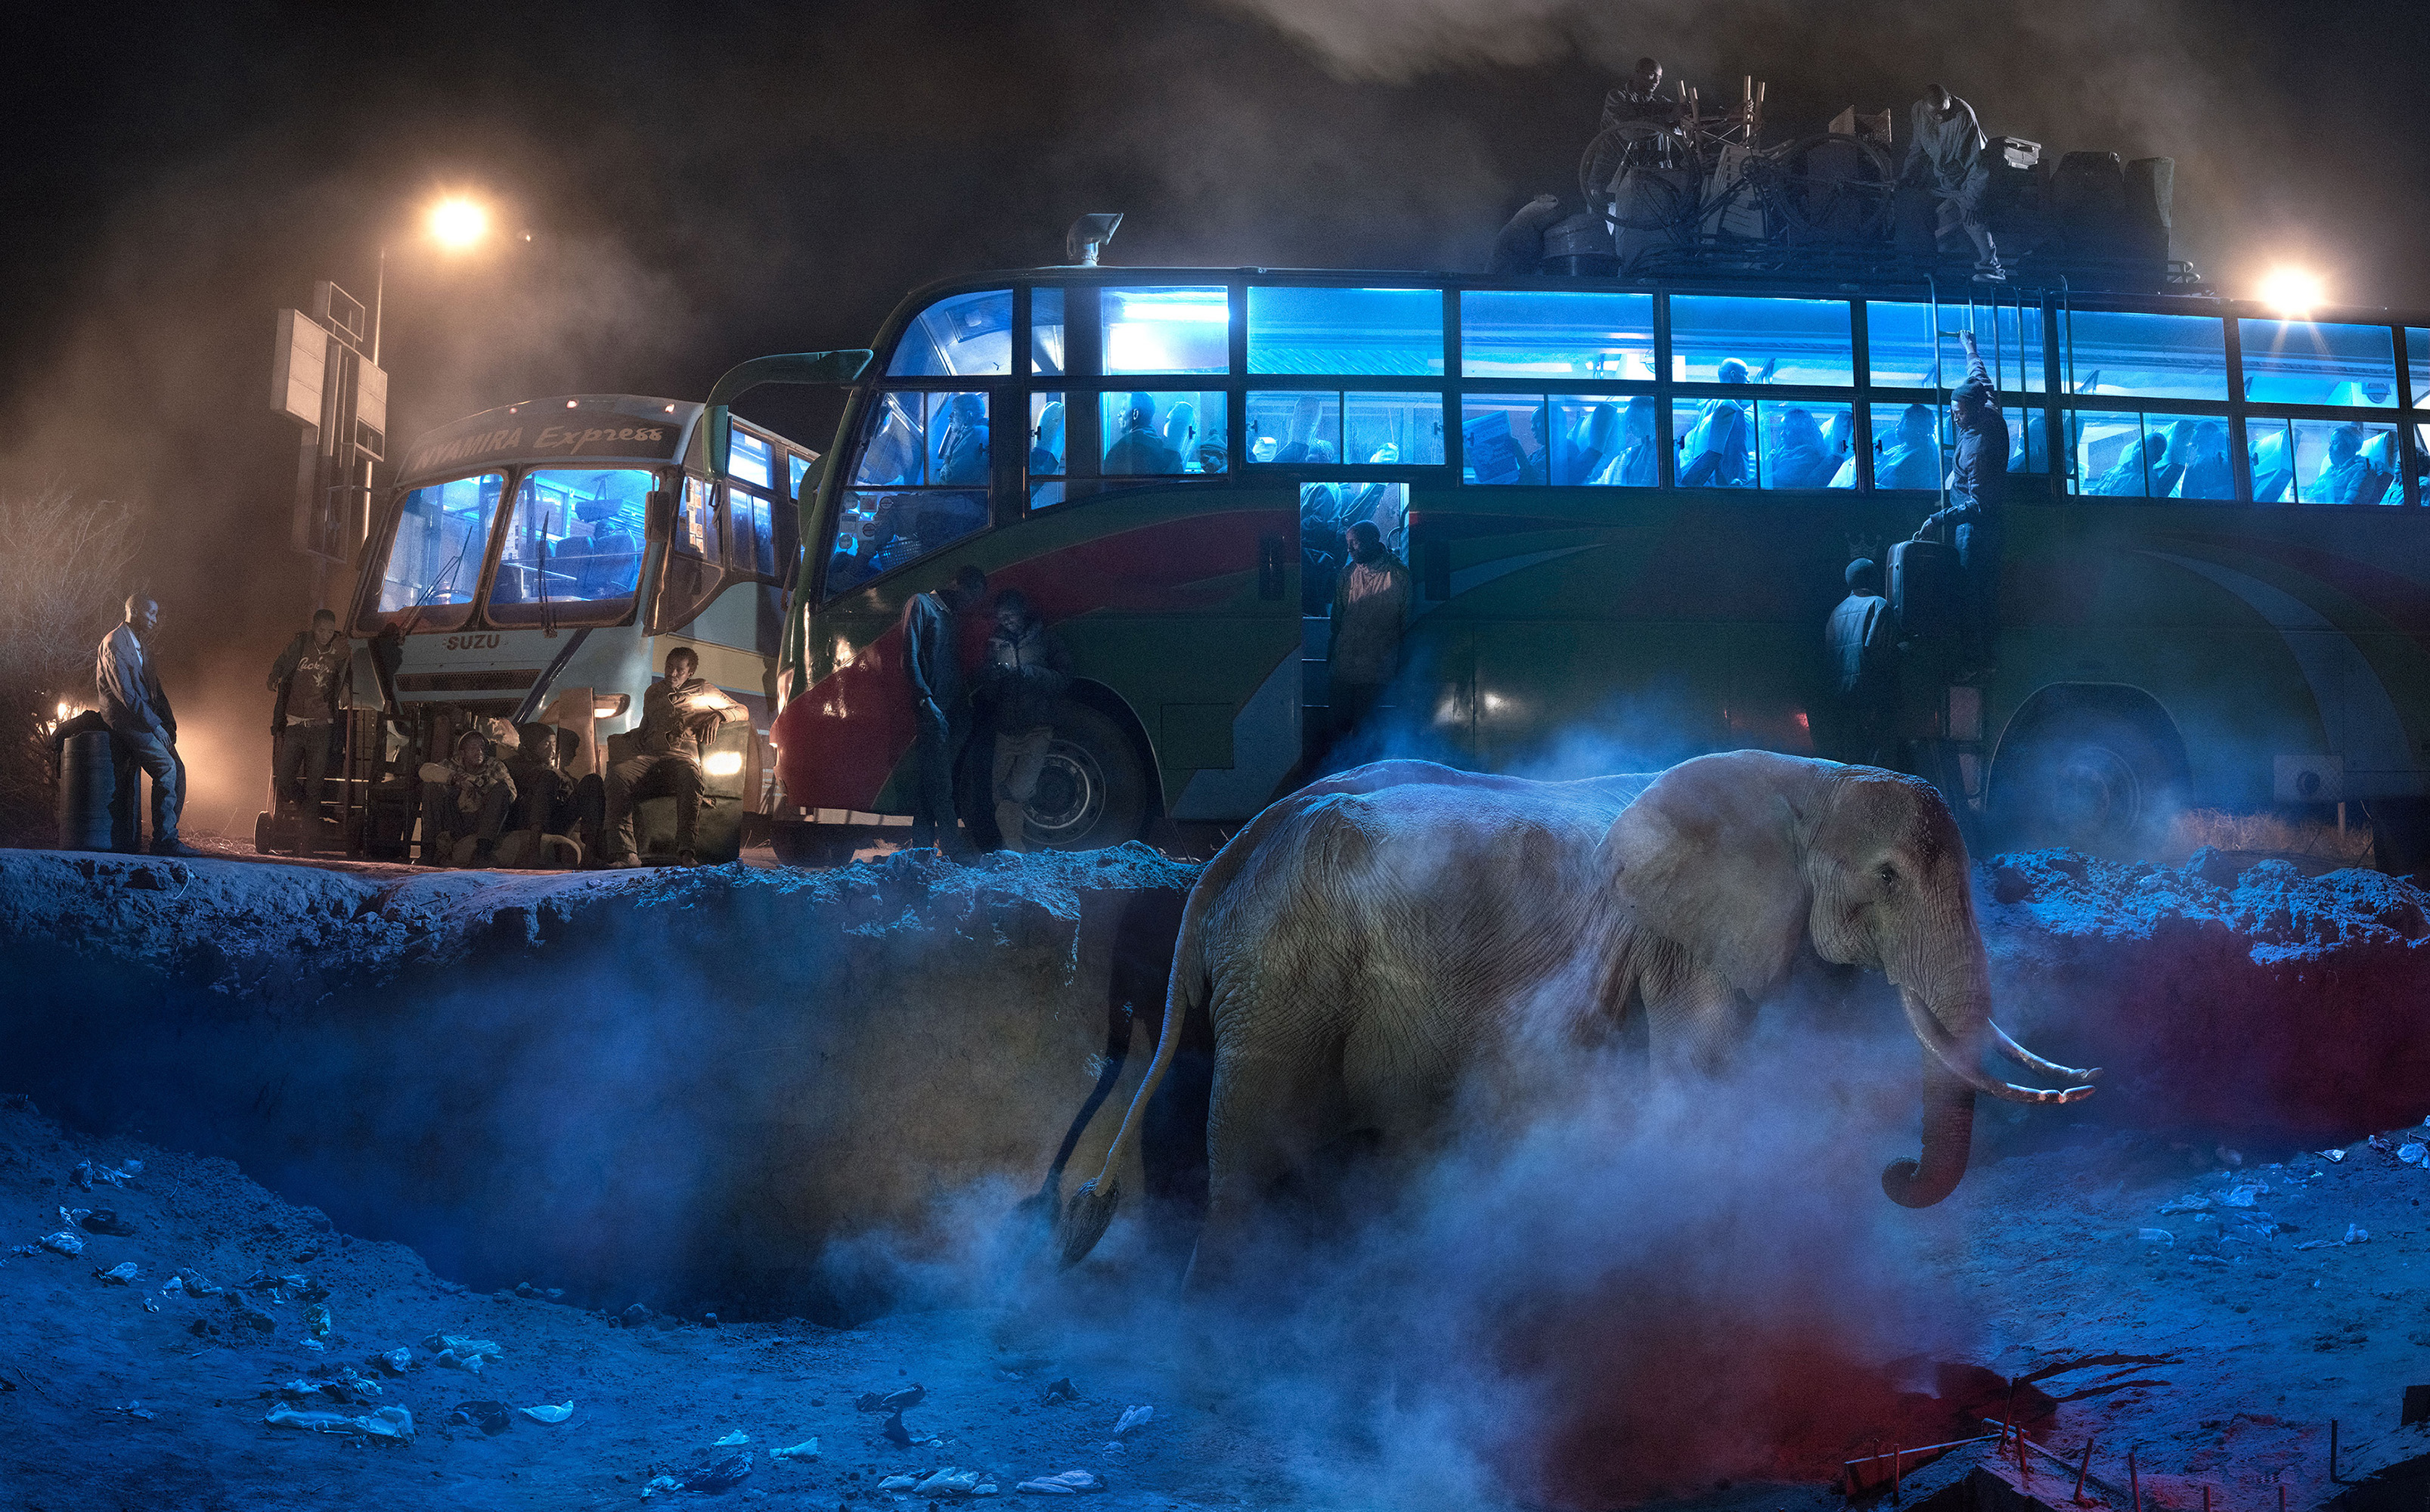 BUS STATION WITH ELEPHANT IN DUST